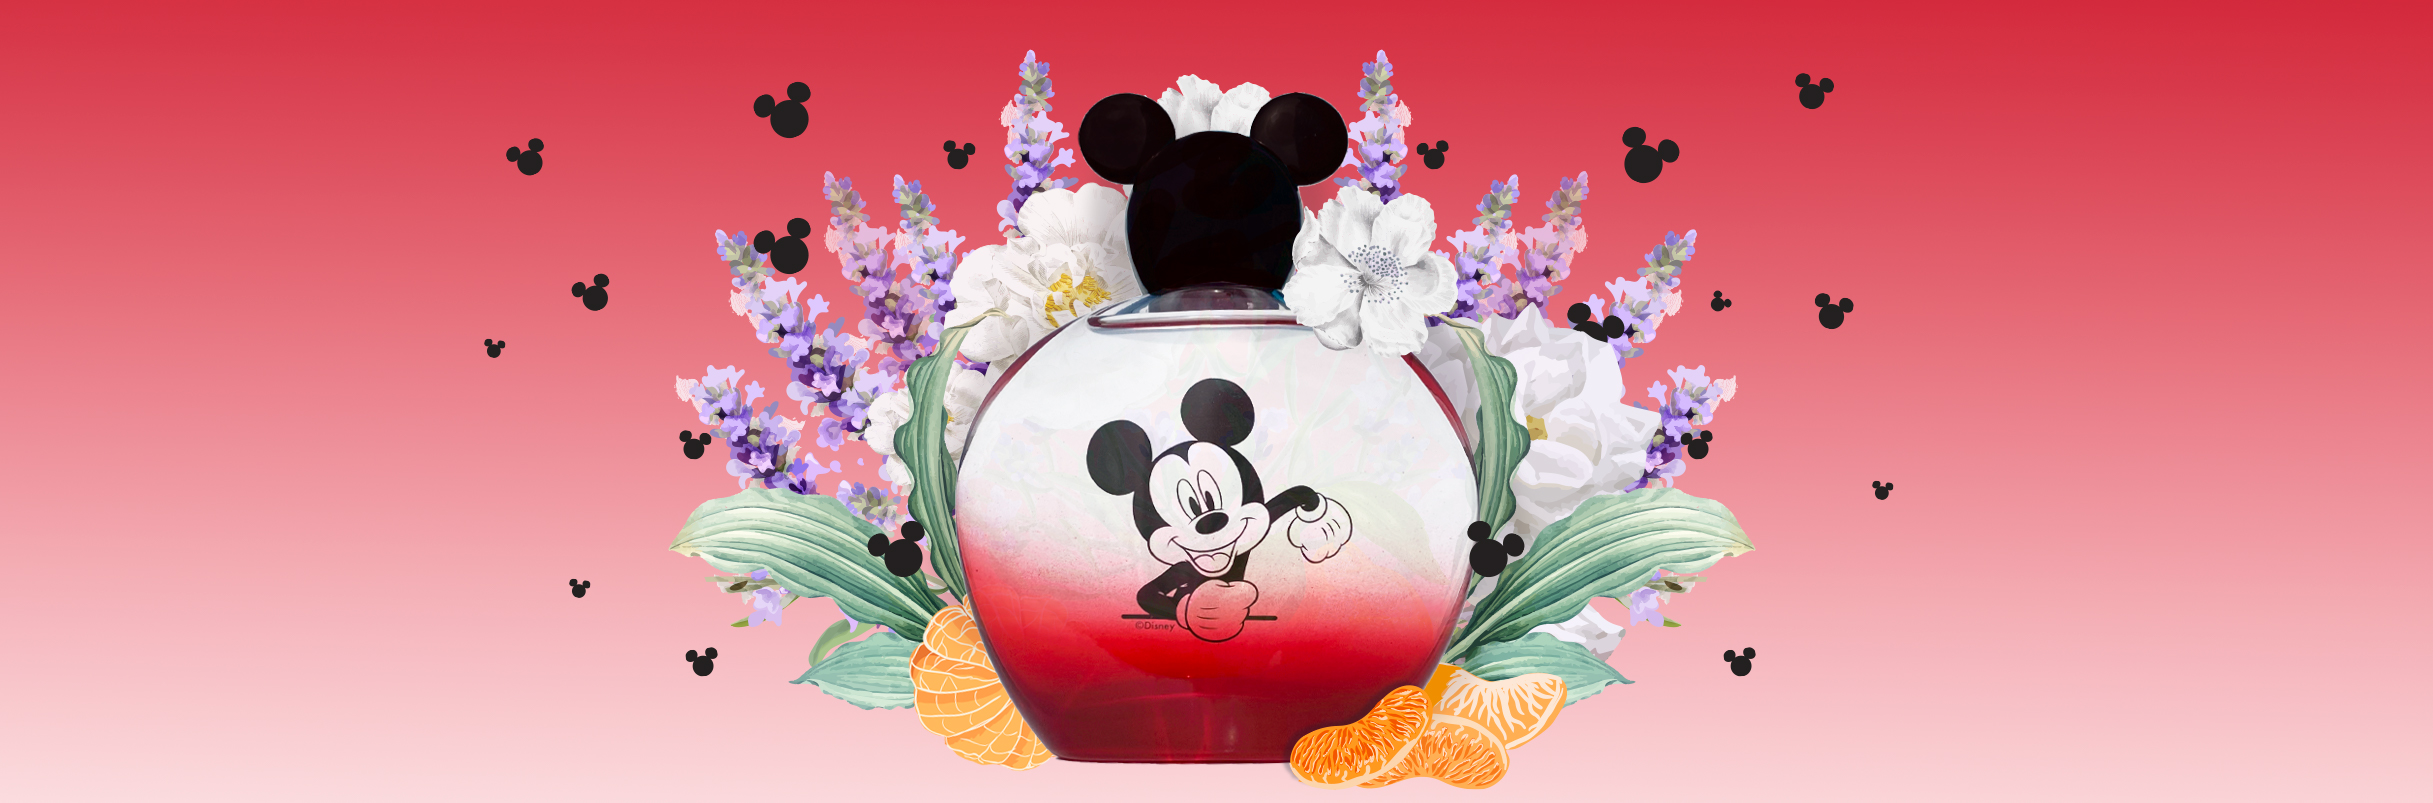 The Mickey Mouse fragrances